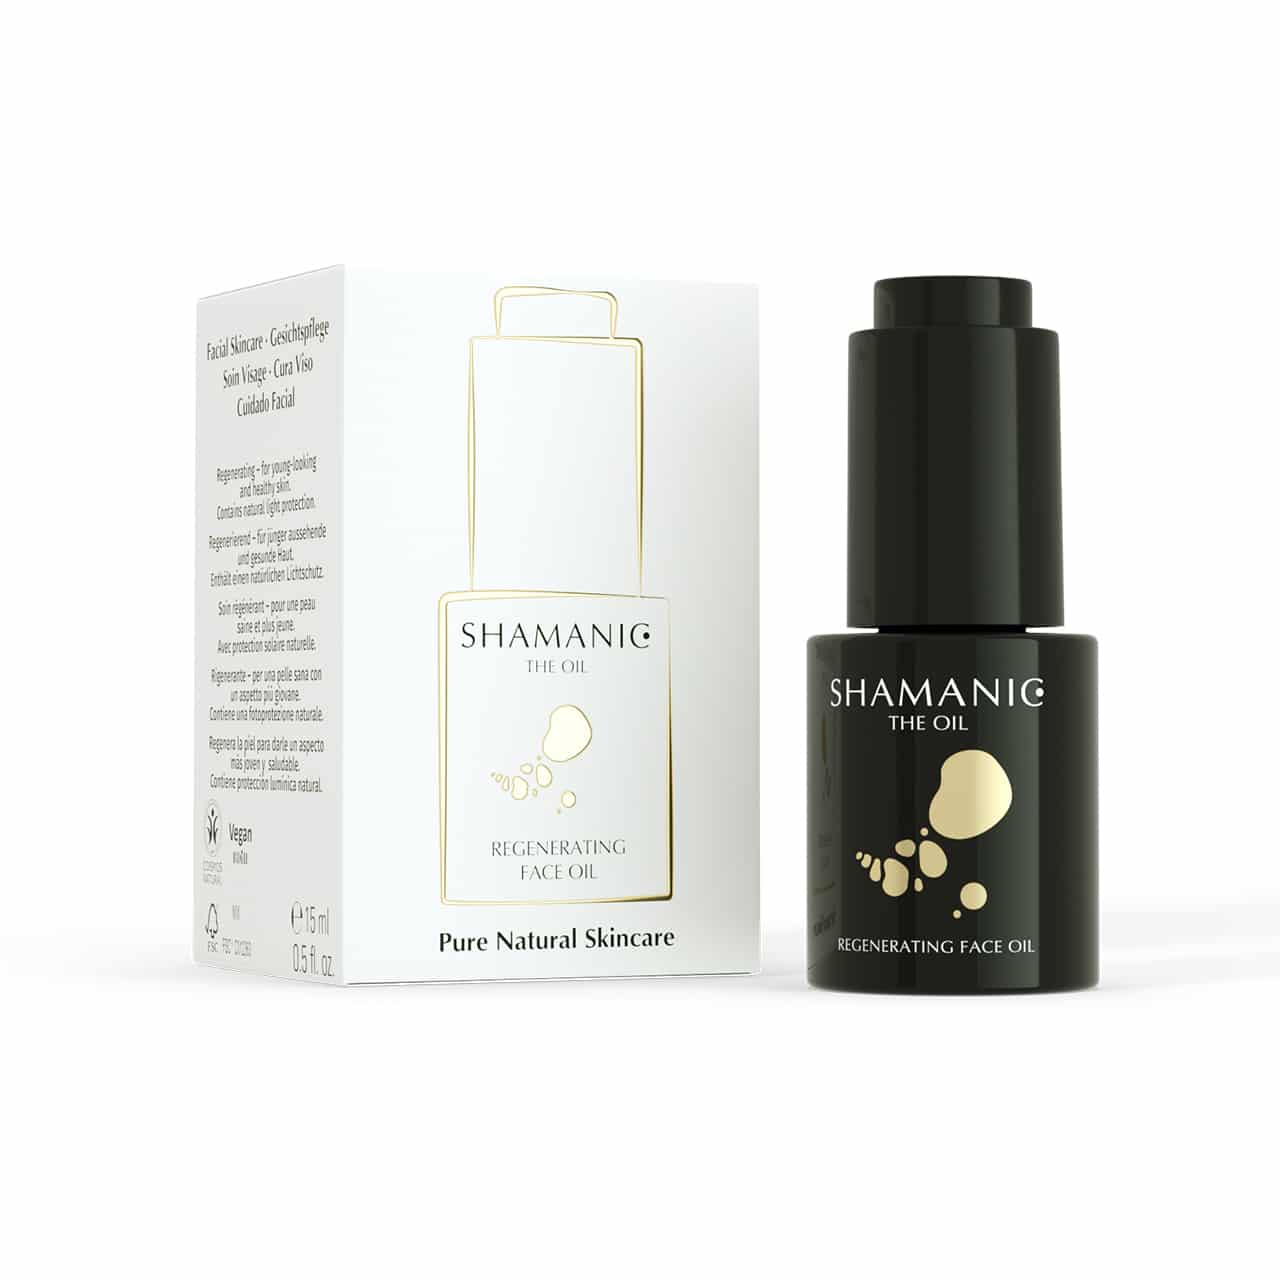 shamanic regenerating face oil